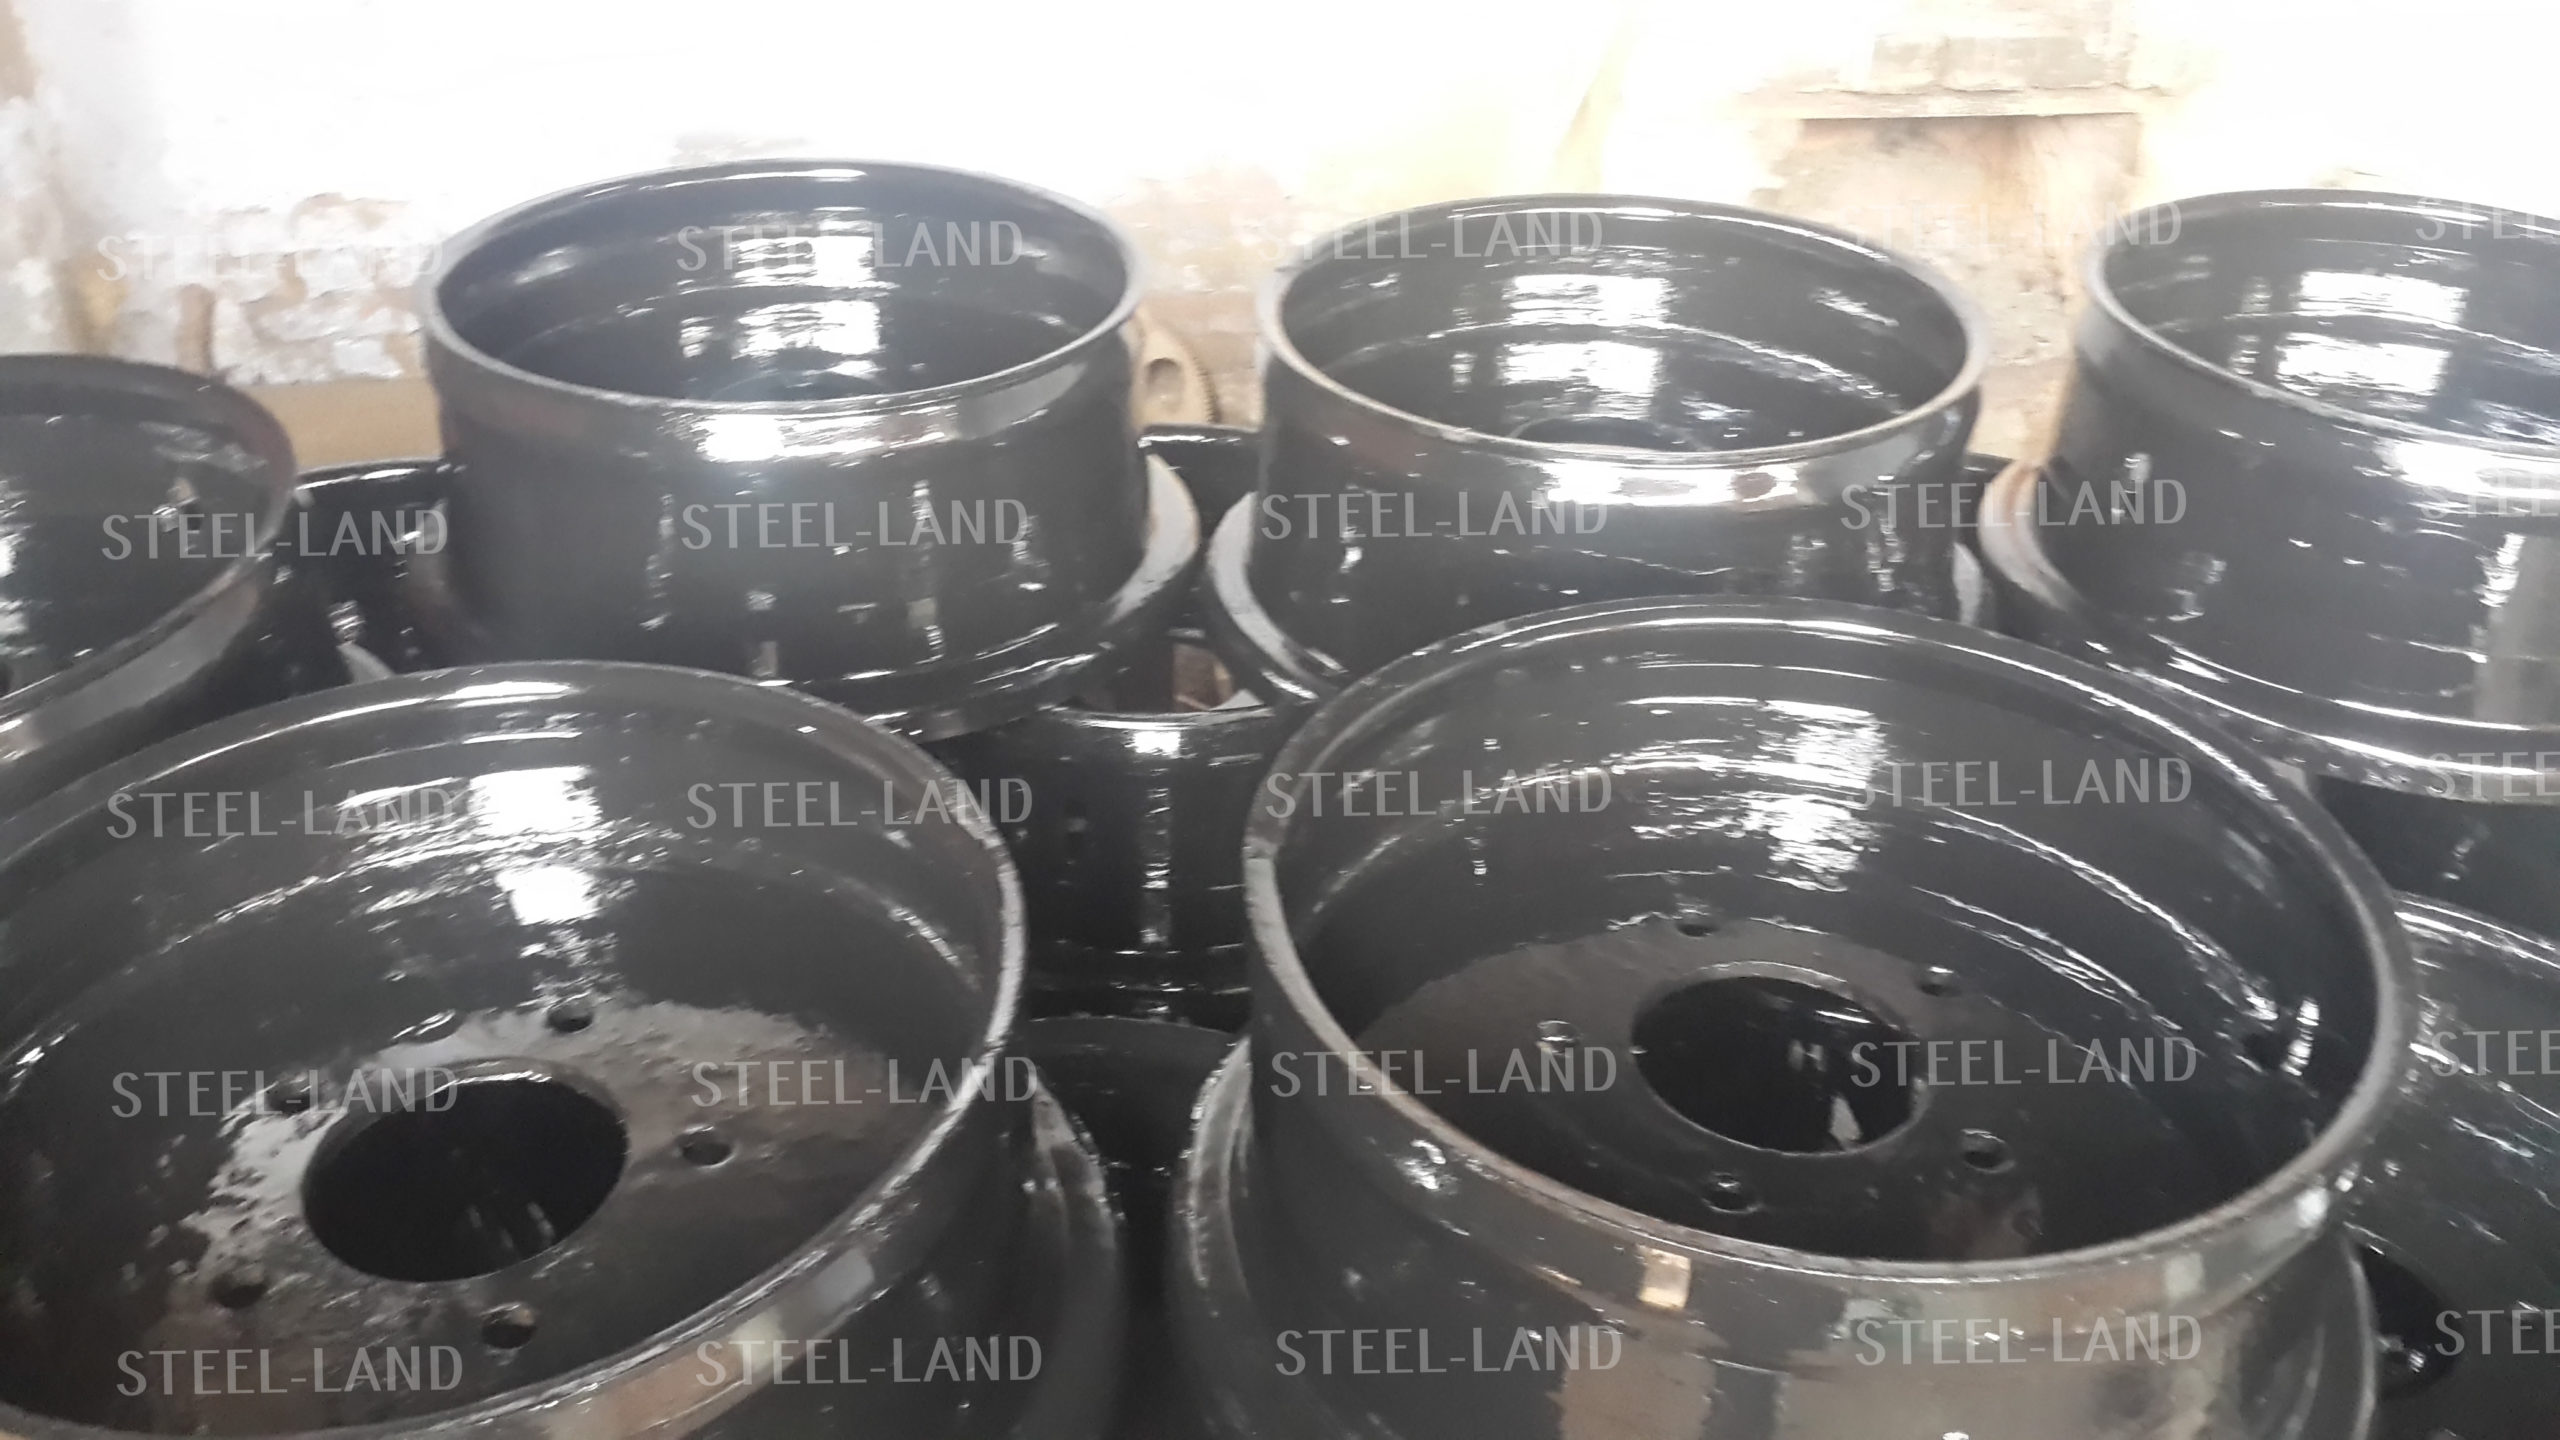 STEEL LAND Wheel rim For Tractor trolley Trailer www.steellandindustries.com 3.jpg